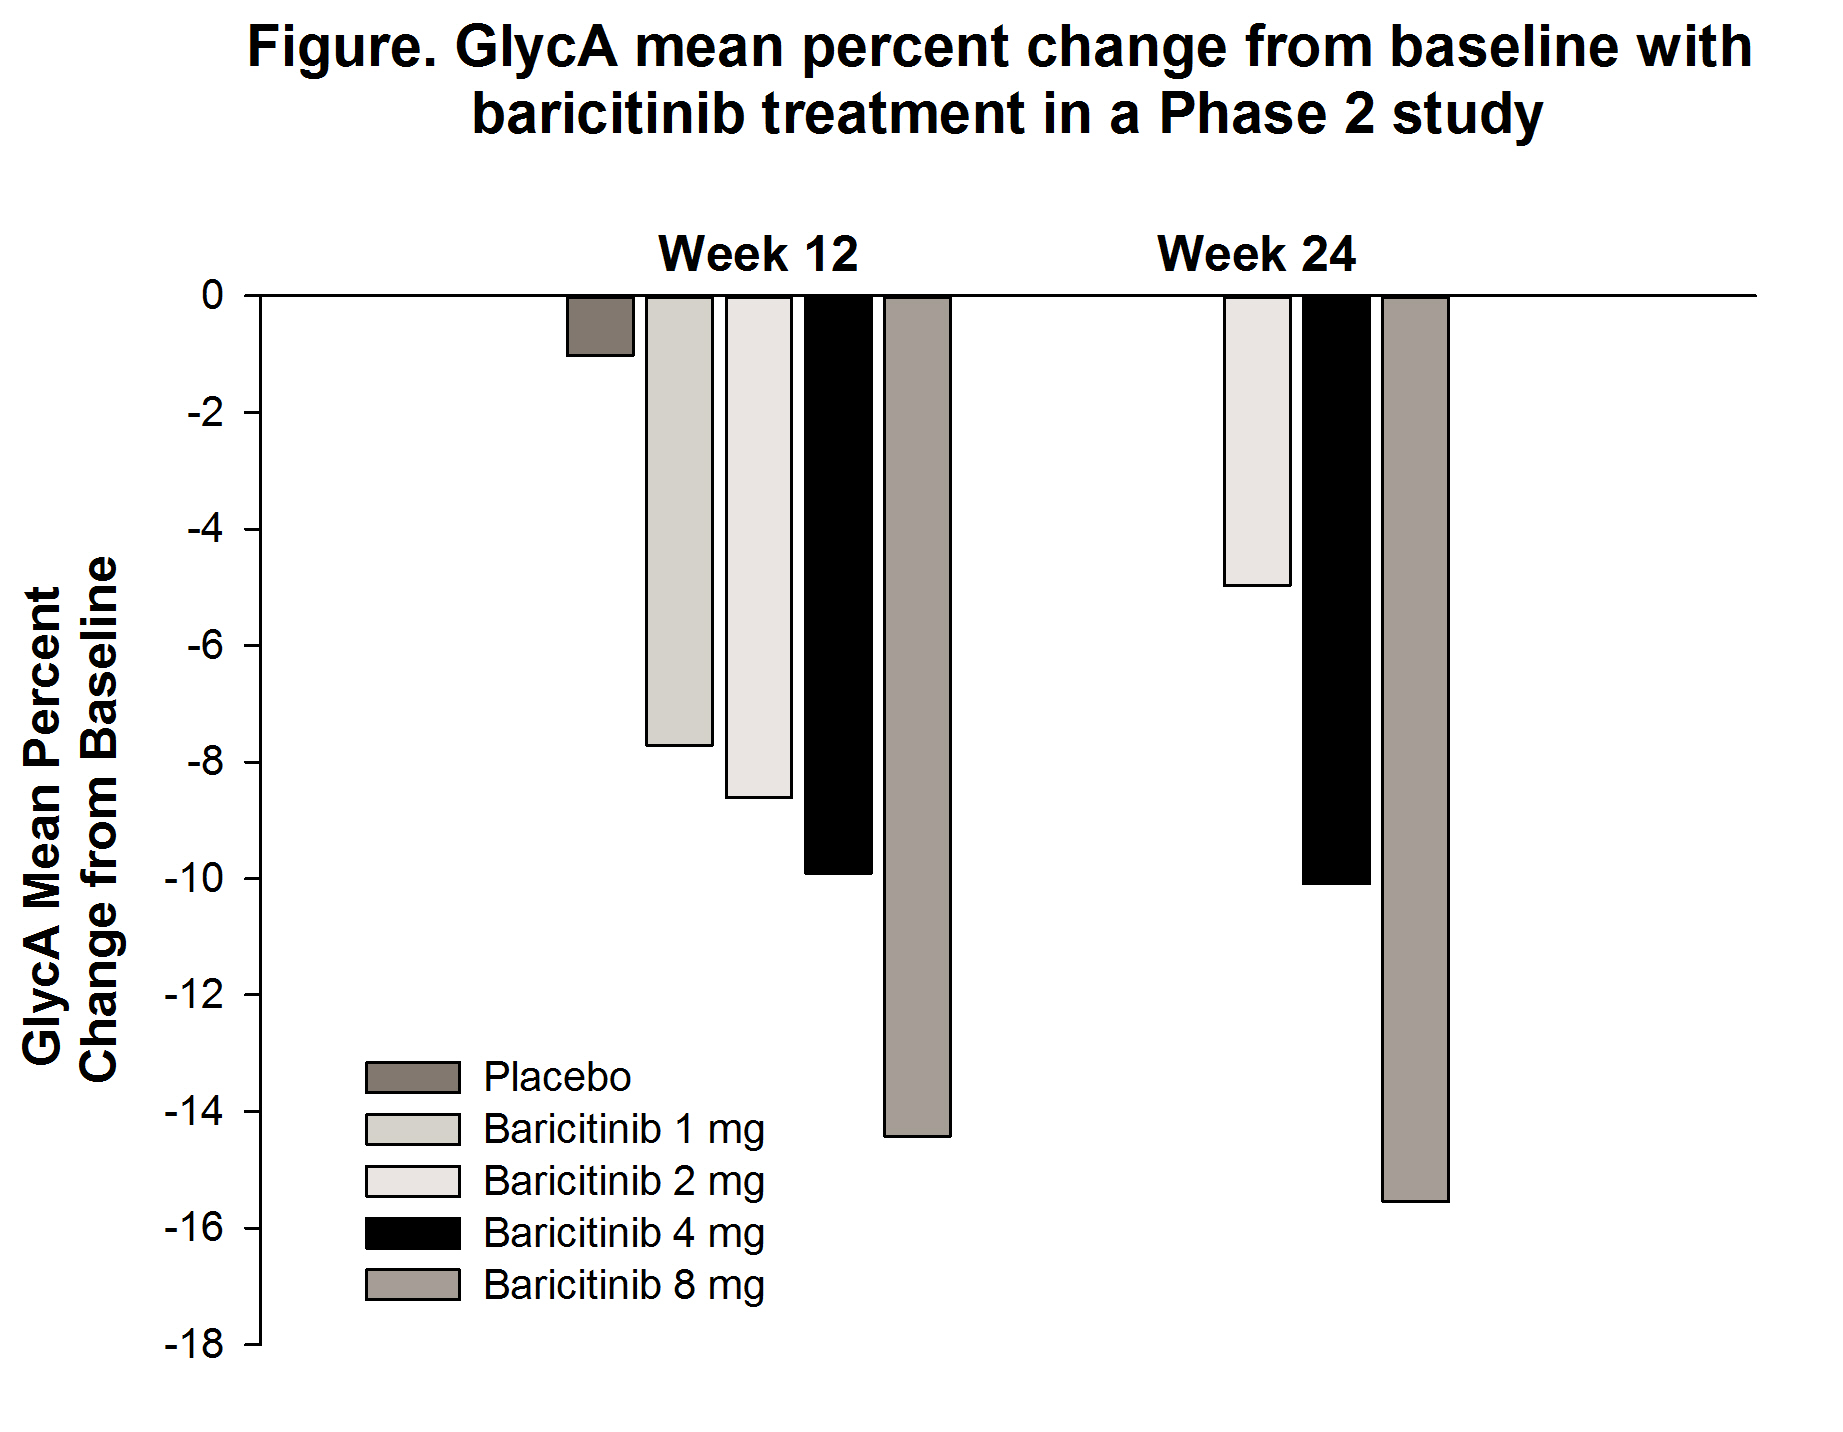 Baricitinib Reduces GlycA Levels in Phase 2 and Phase 3